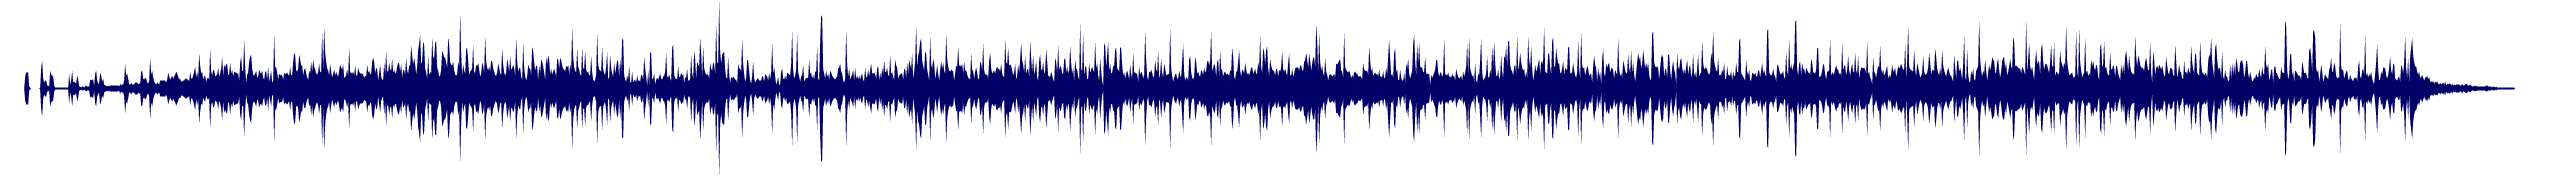 waveform of track #66565